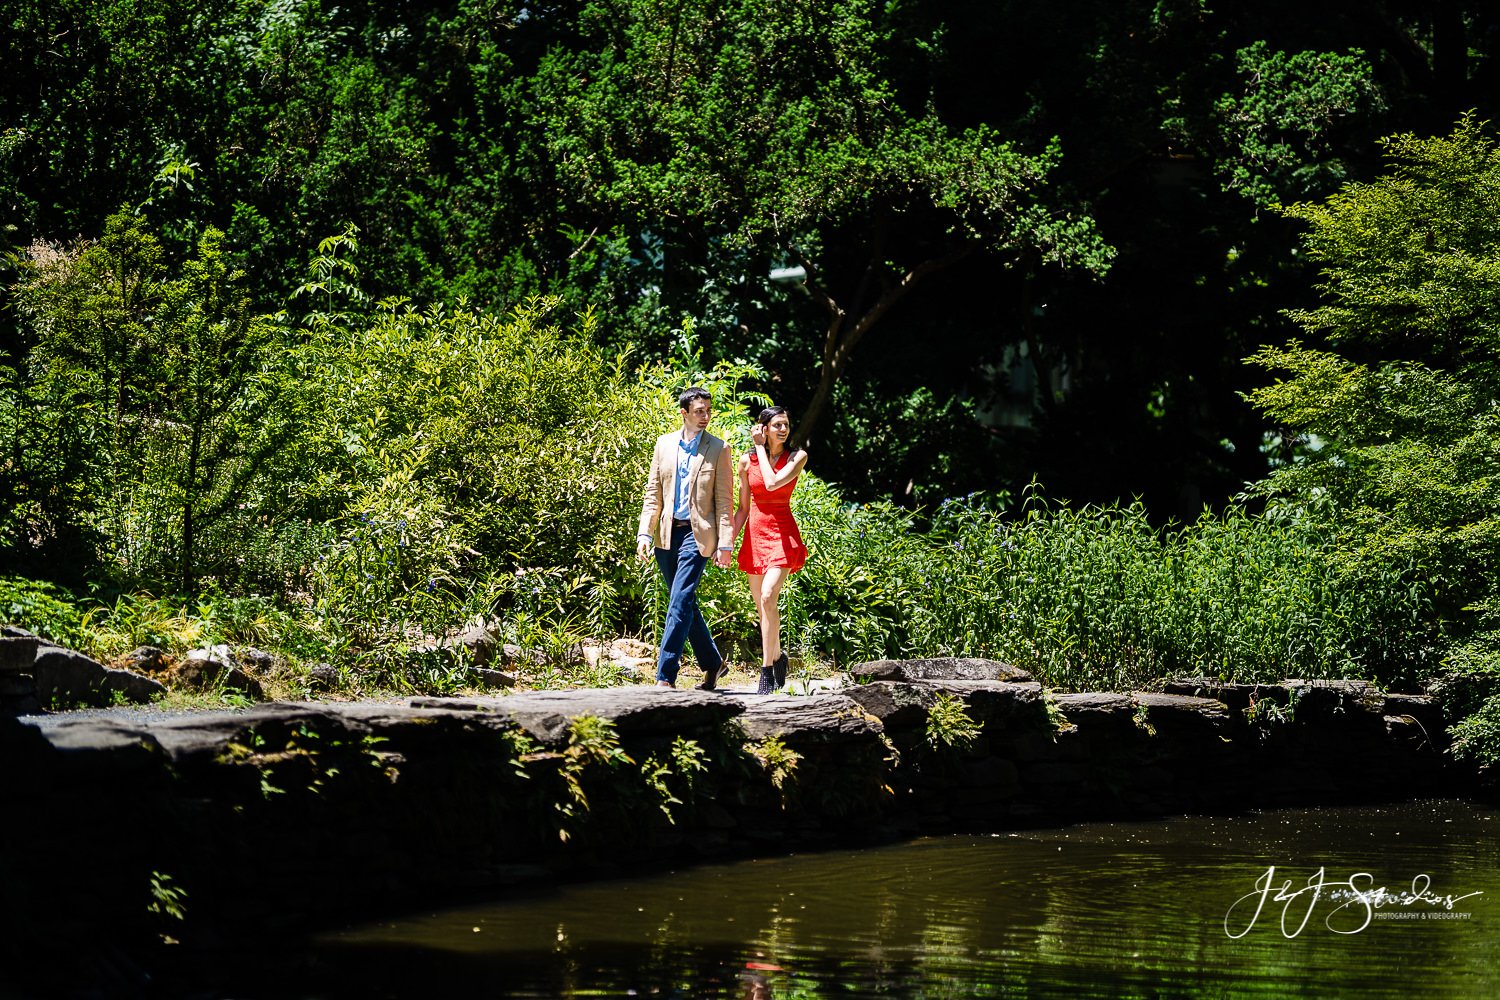 Surprise engagement walking through park in Philly